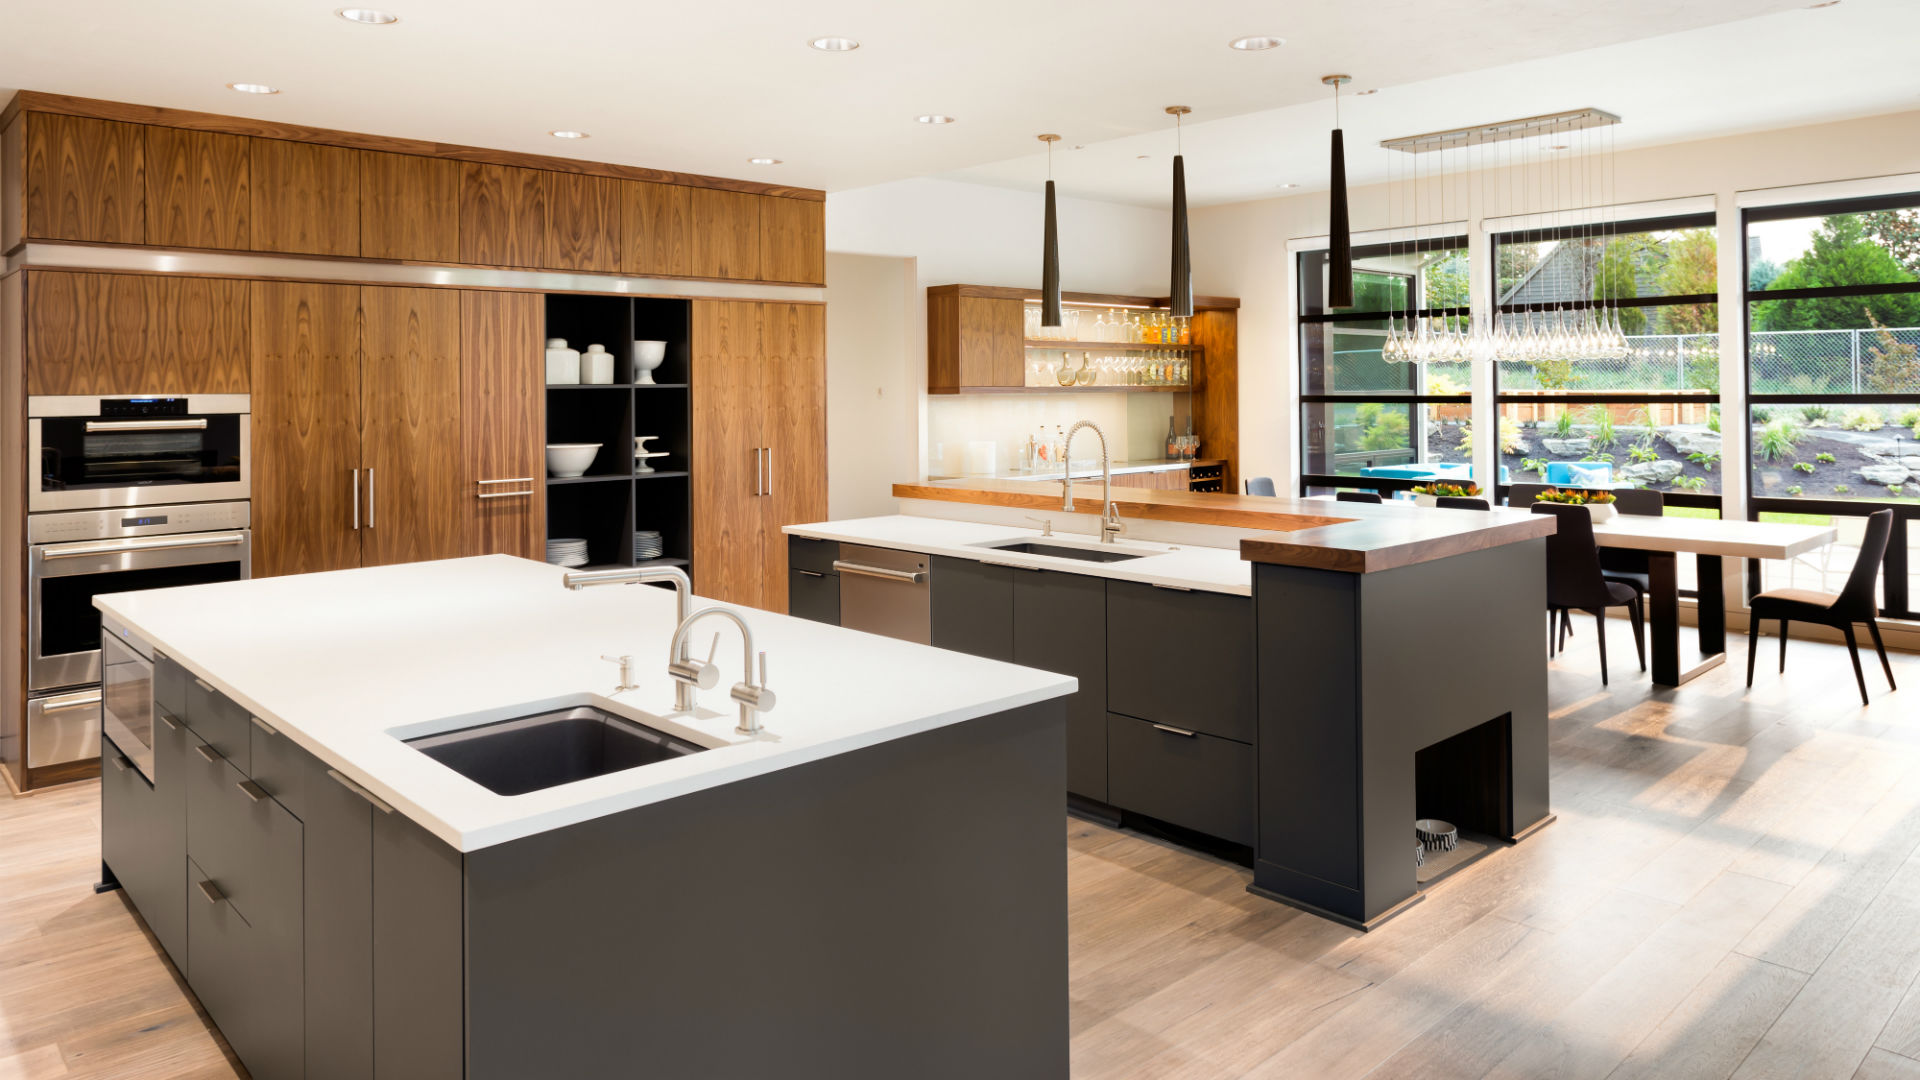 Kitchenremodeling1920x1080